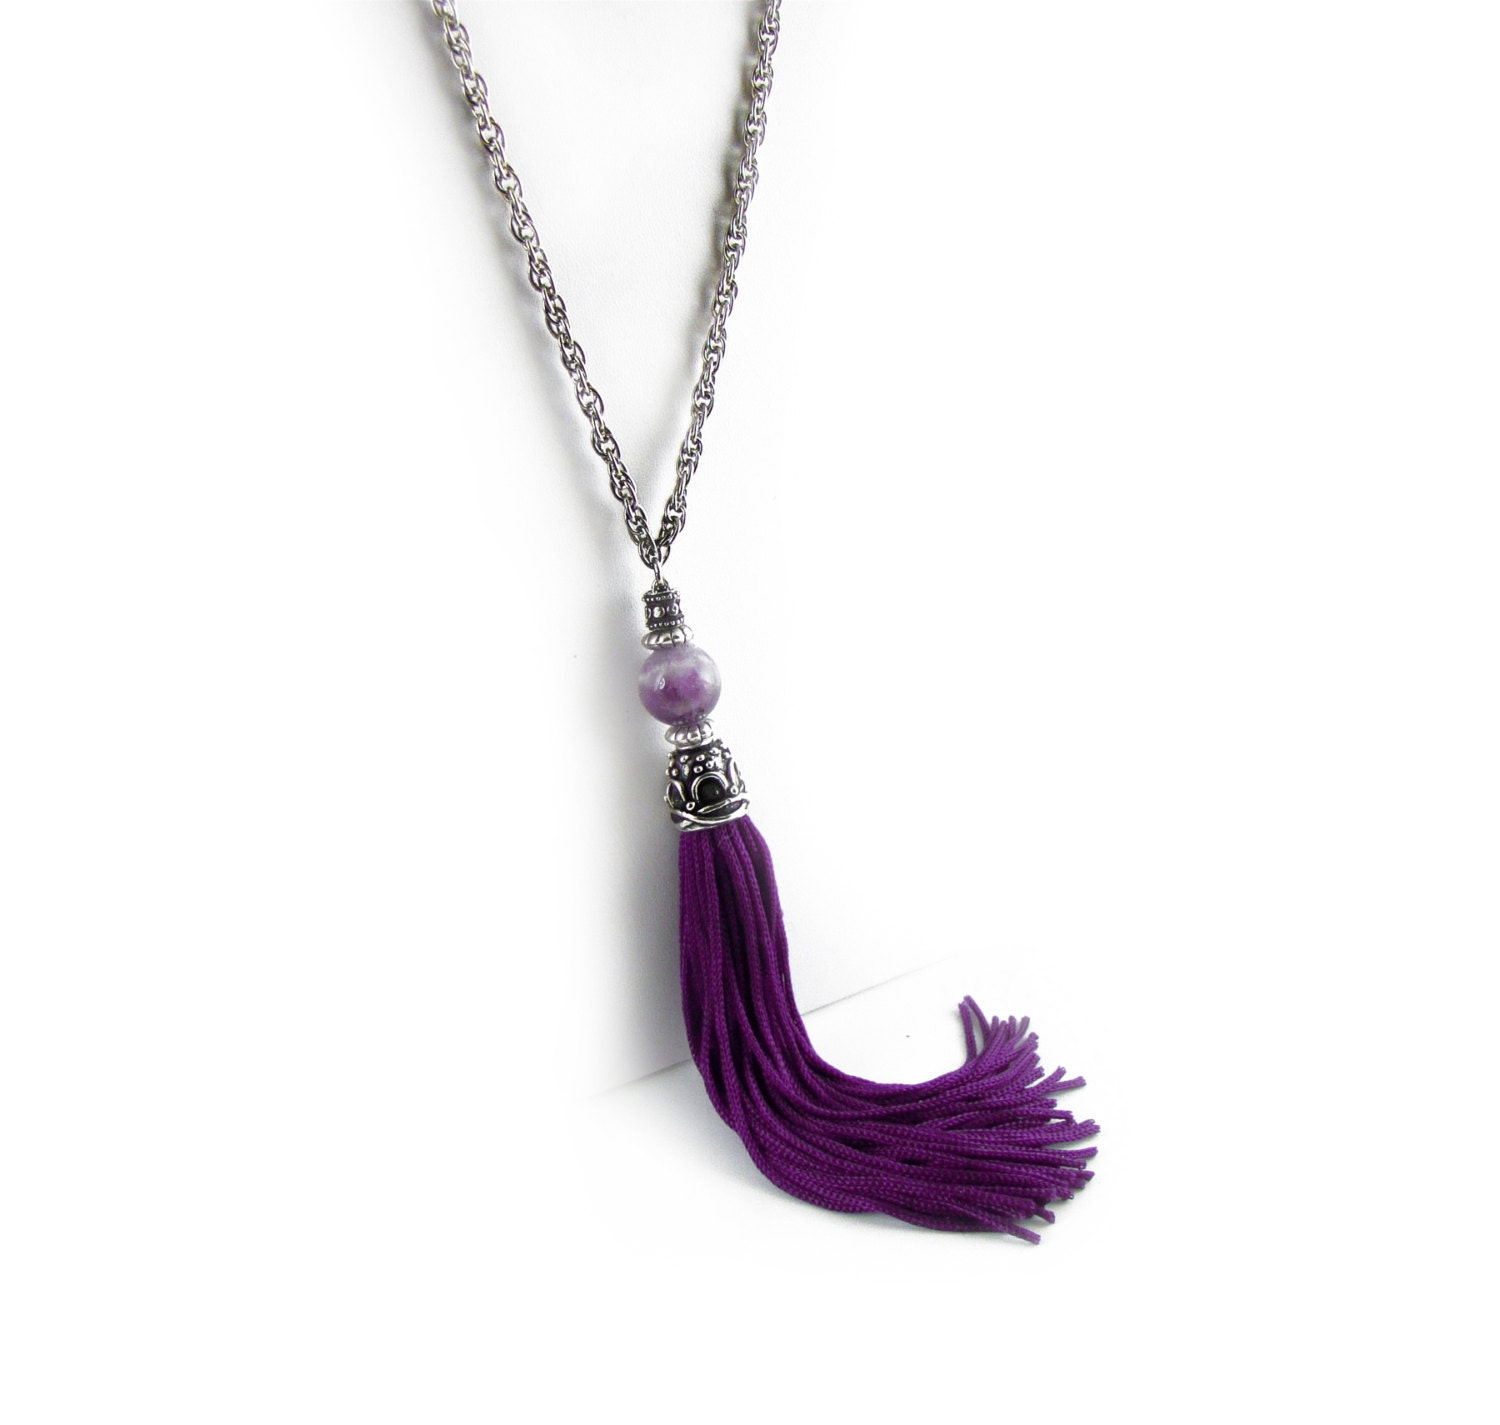 versona l necklace item default glimmering tassel bead